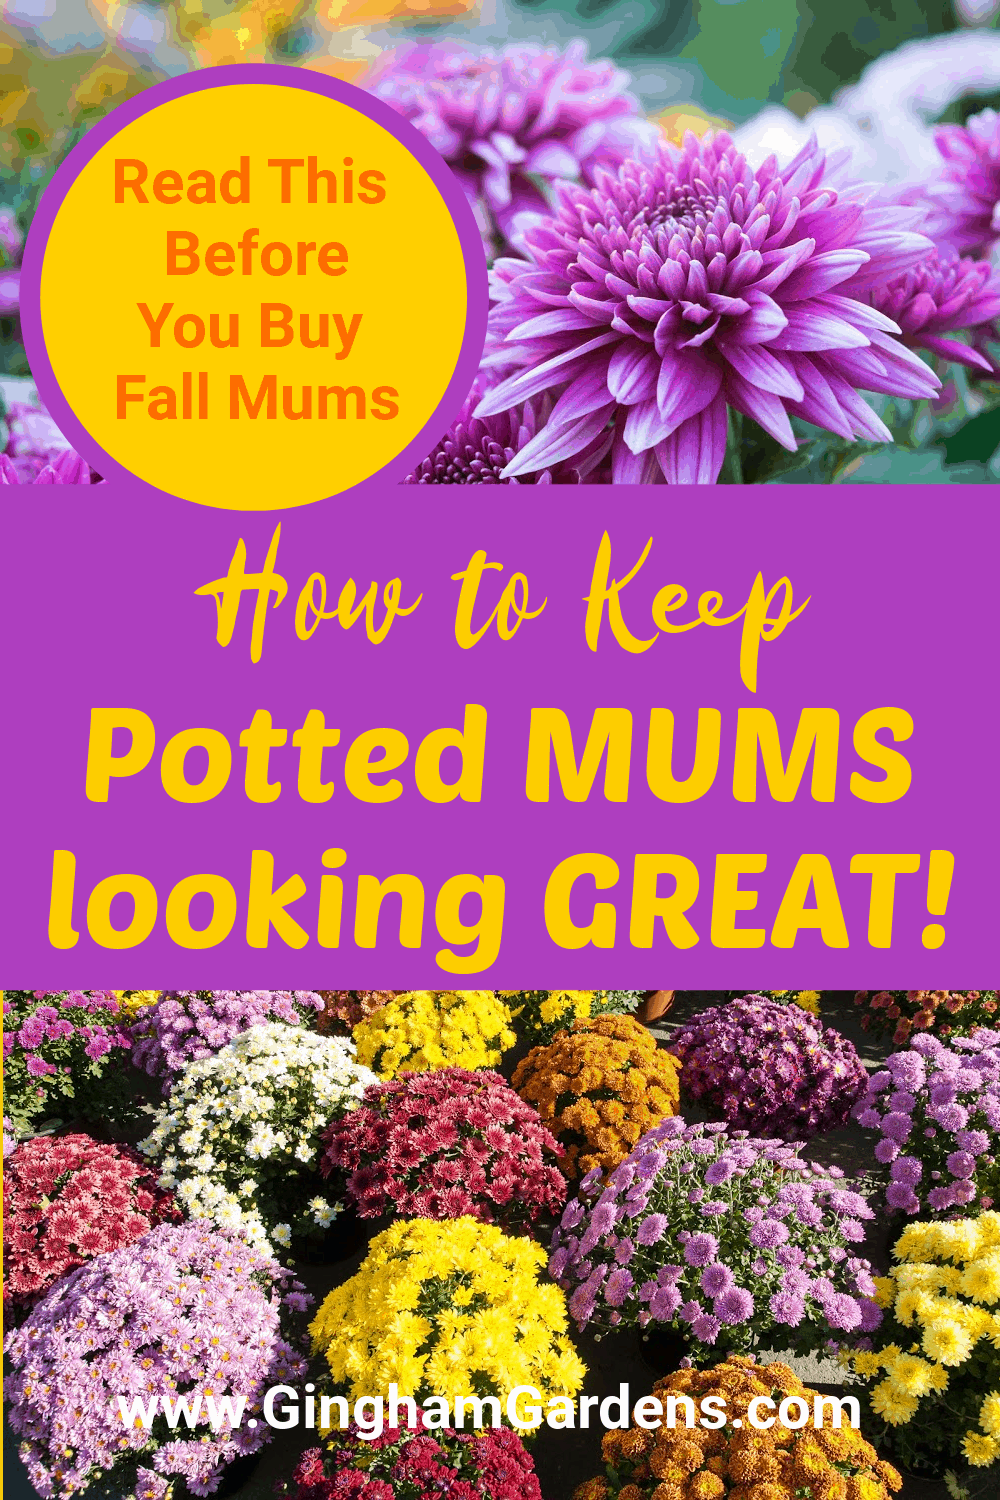 Image of Chrysanthemums with text overlay - how to keep potted mums looking great